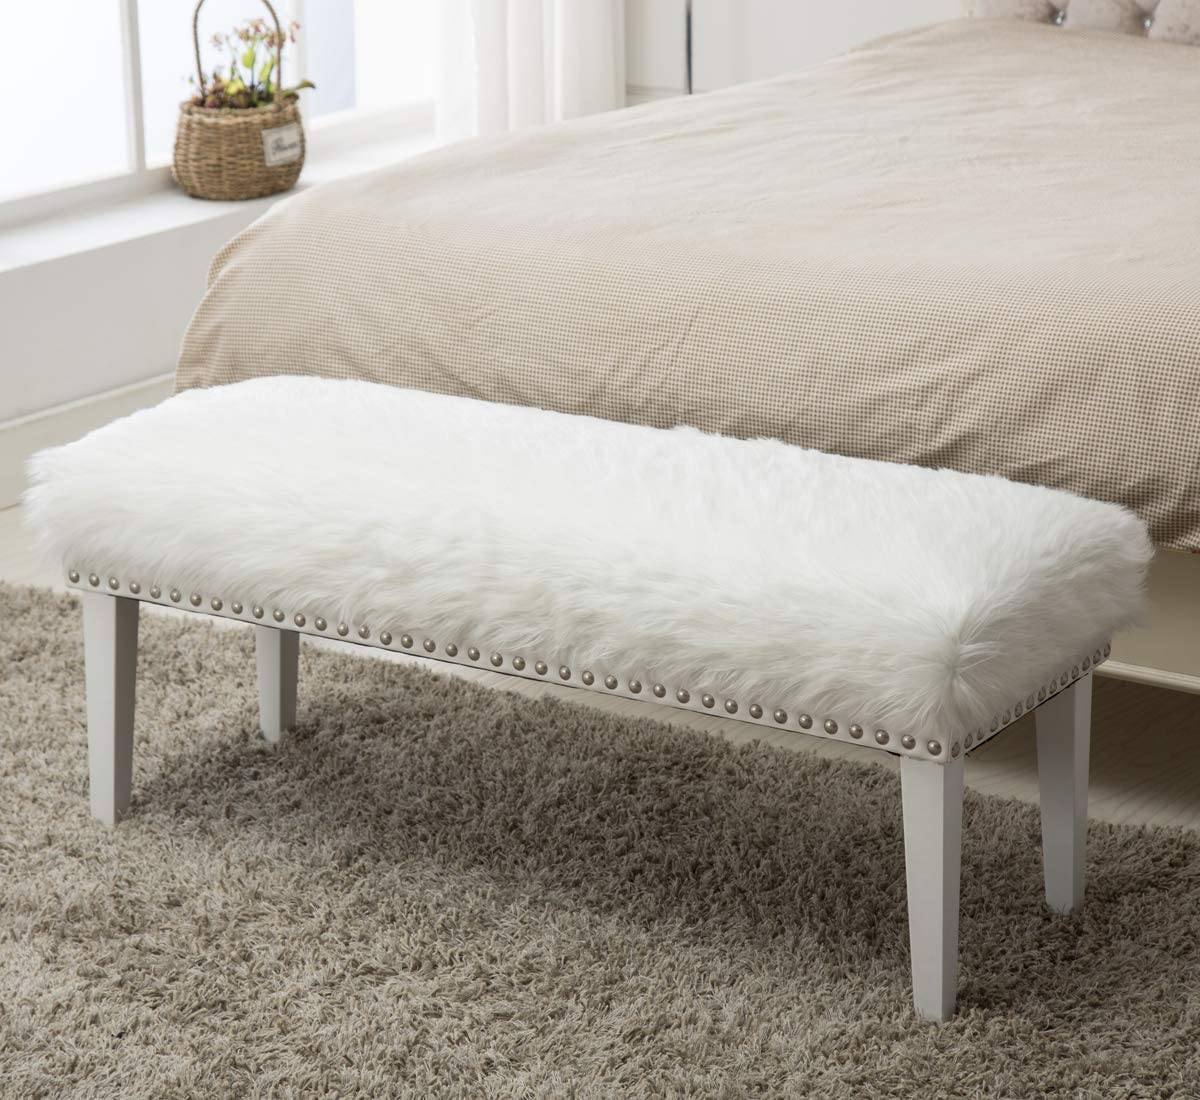 Max 44% OFF White Faux Fur Ottoman Bench Bedroom Upholstered Free shipping on posting reviews Livin for